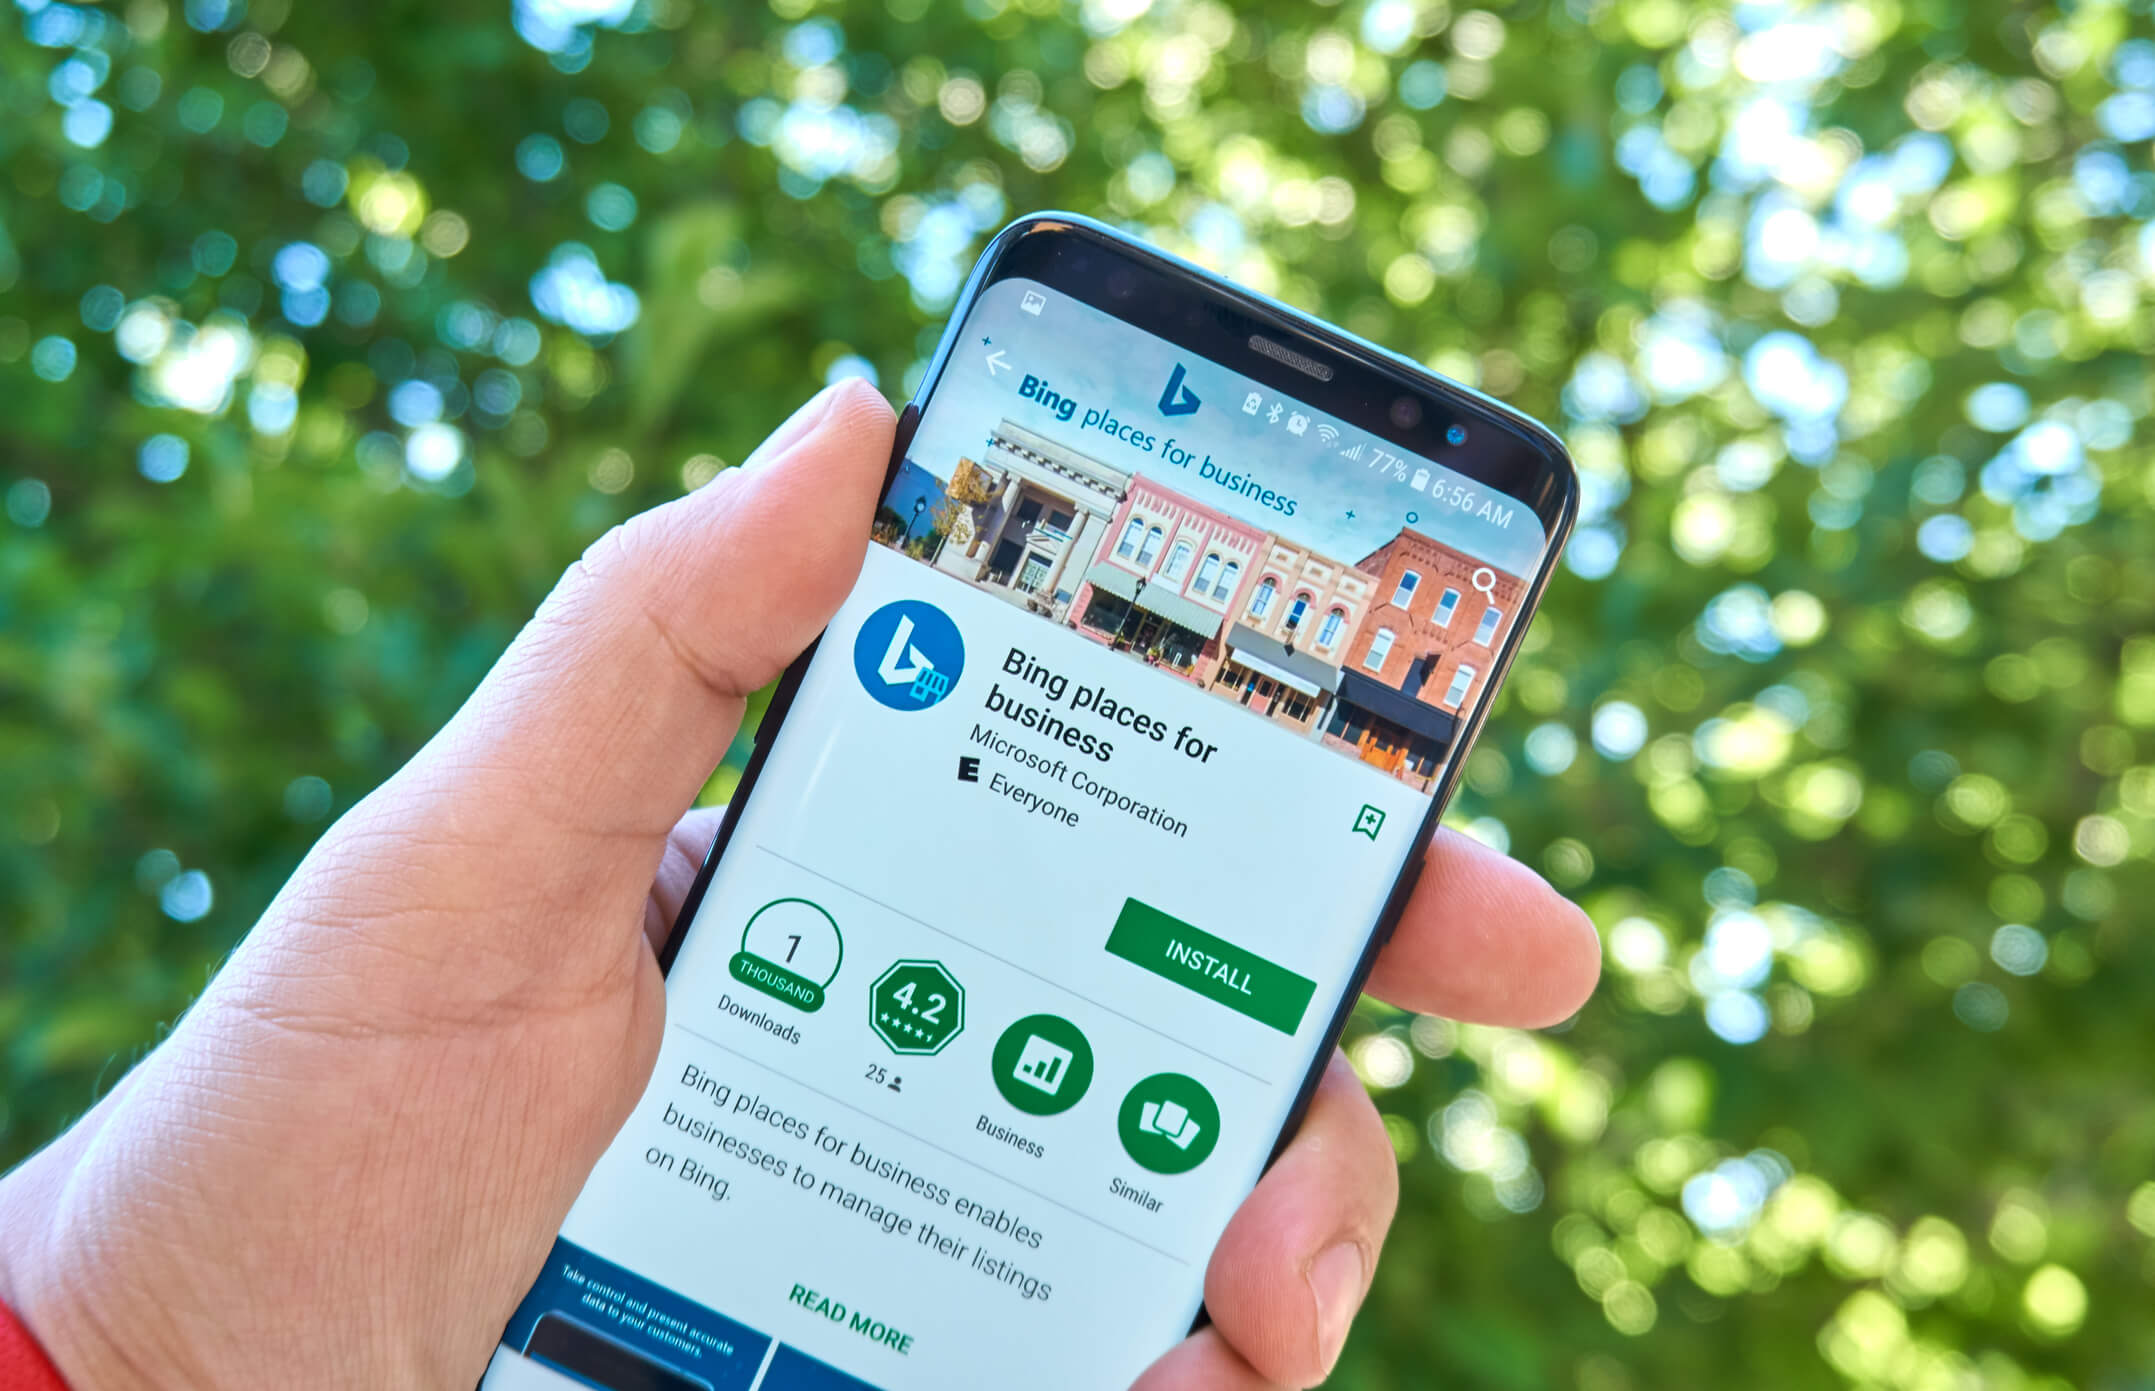 Bing Places dashboard displays on a smart phone